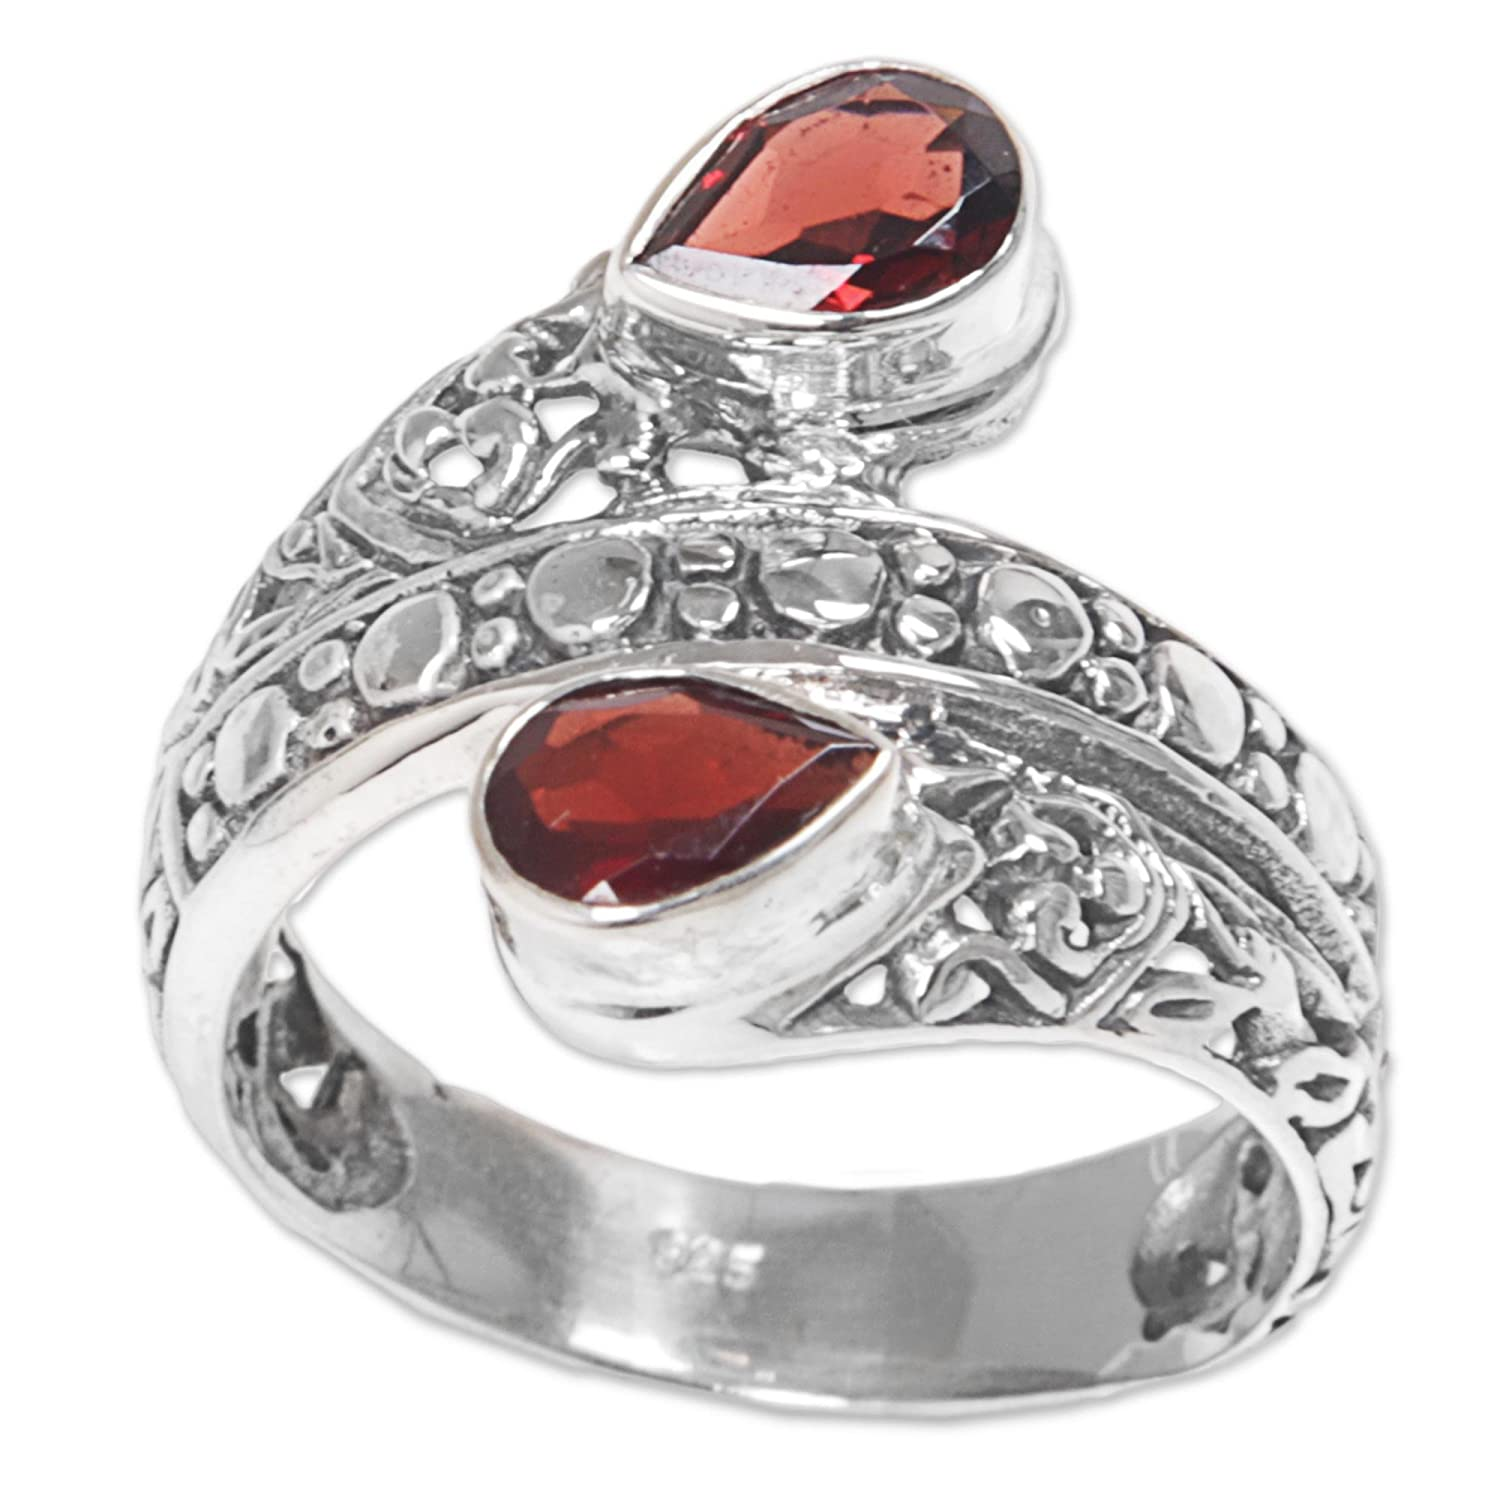 Novica Garnet cocktail ring, Red Udeng